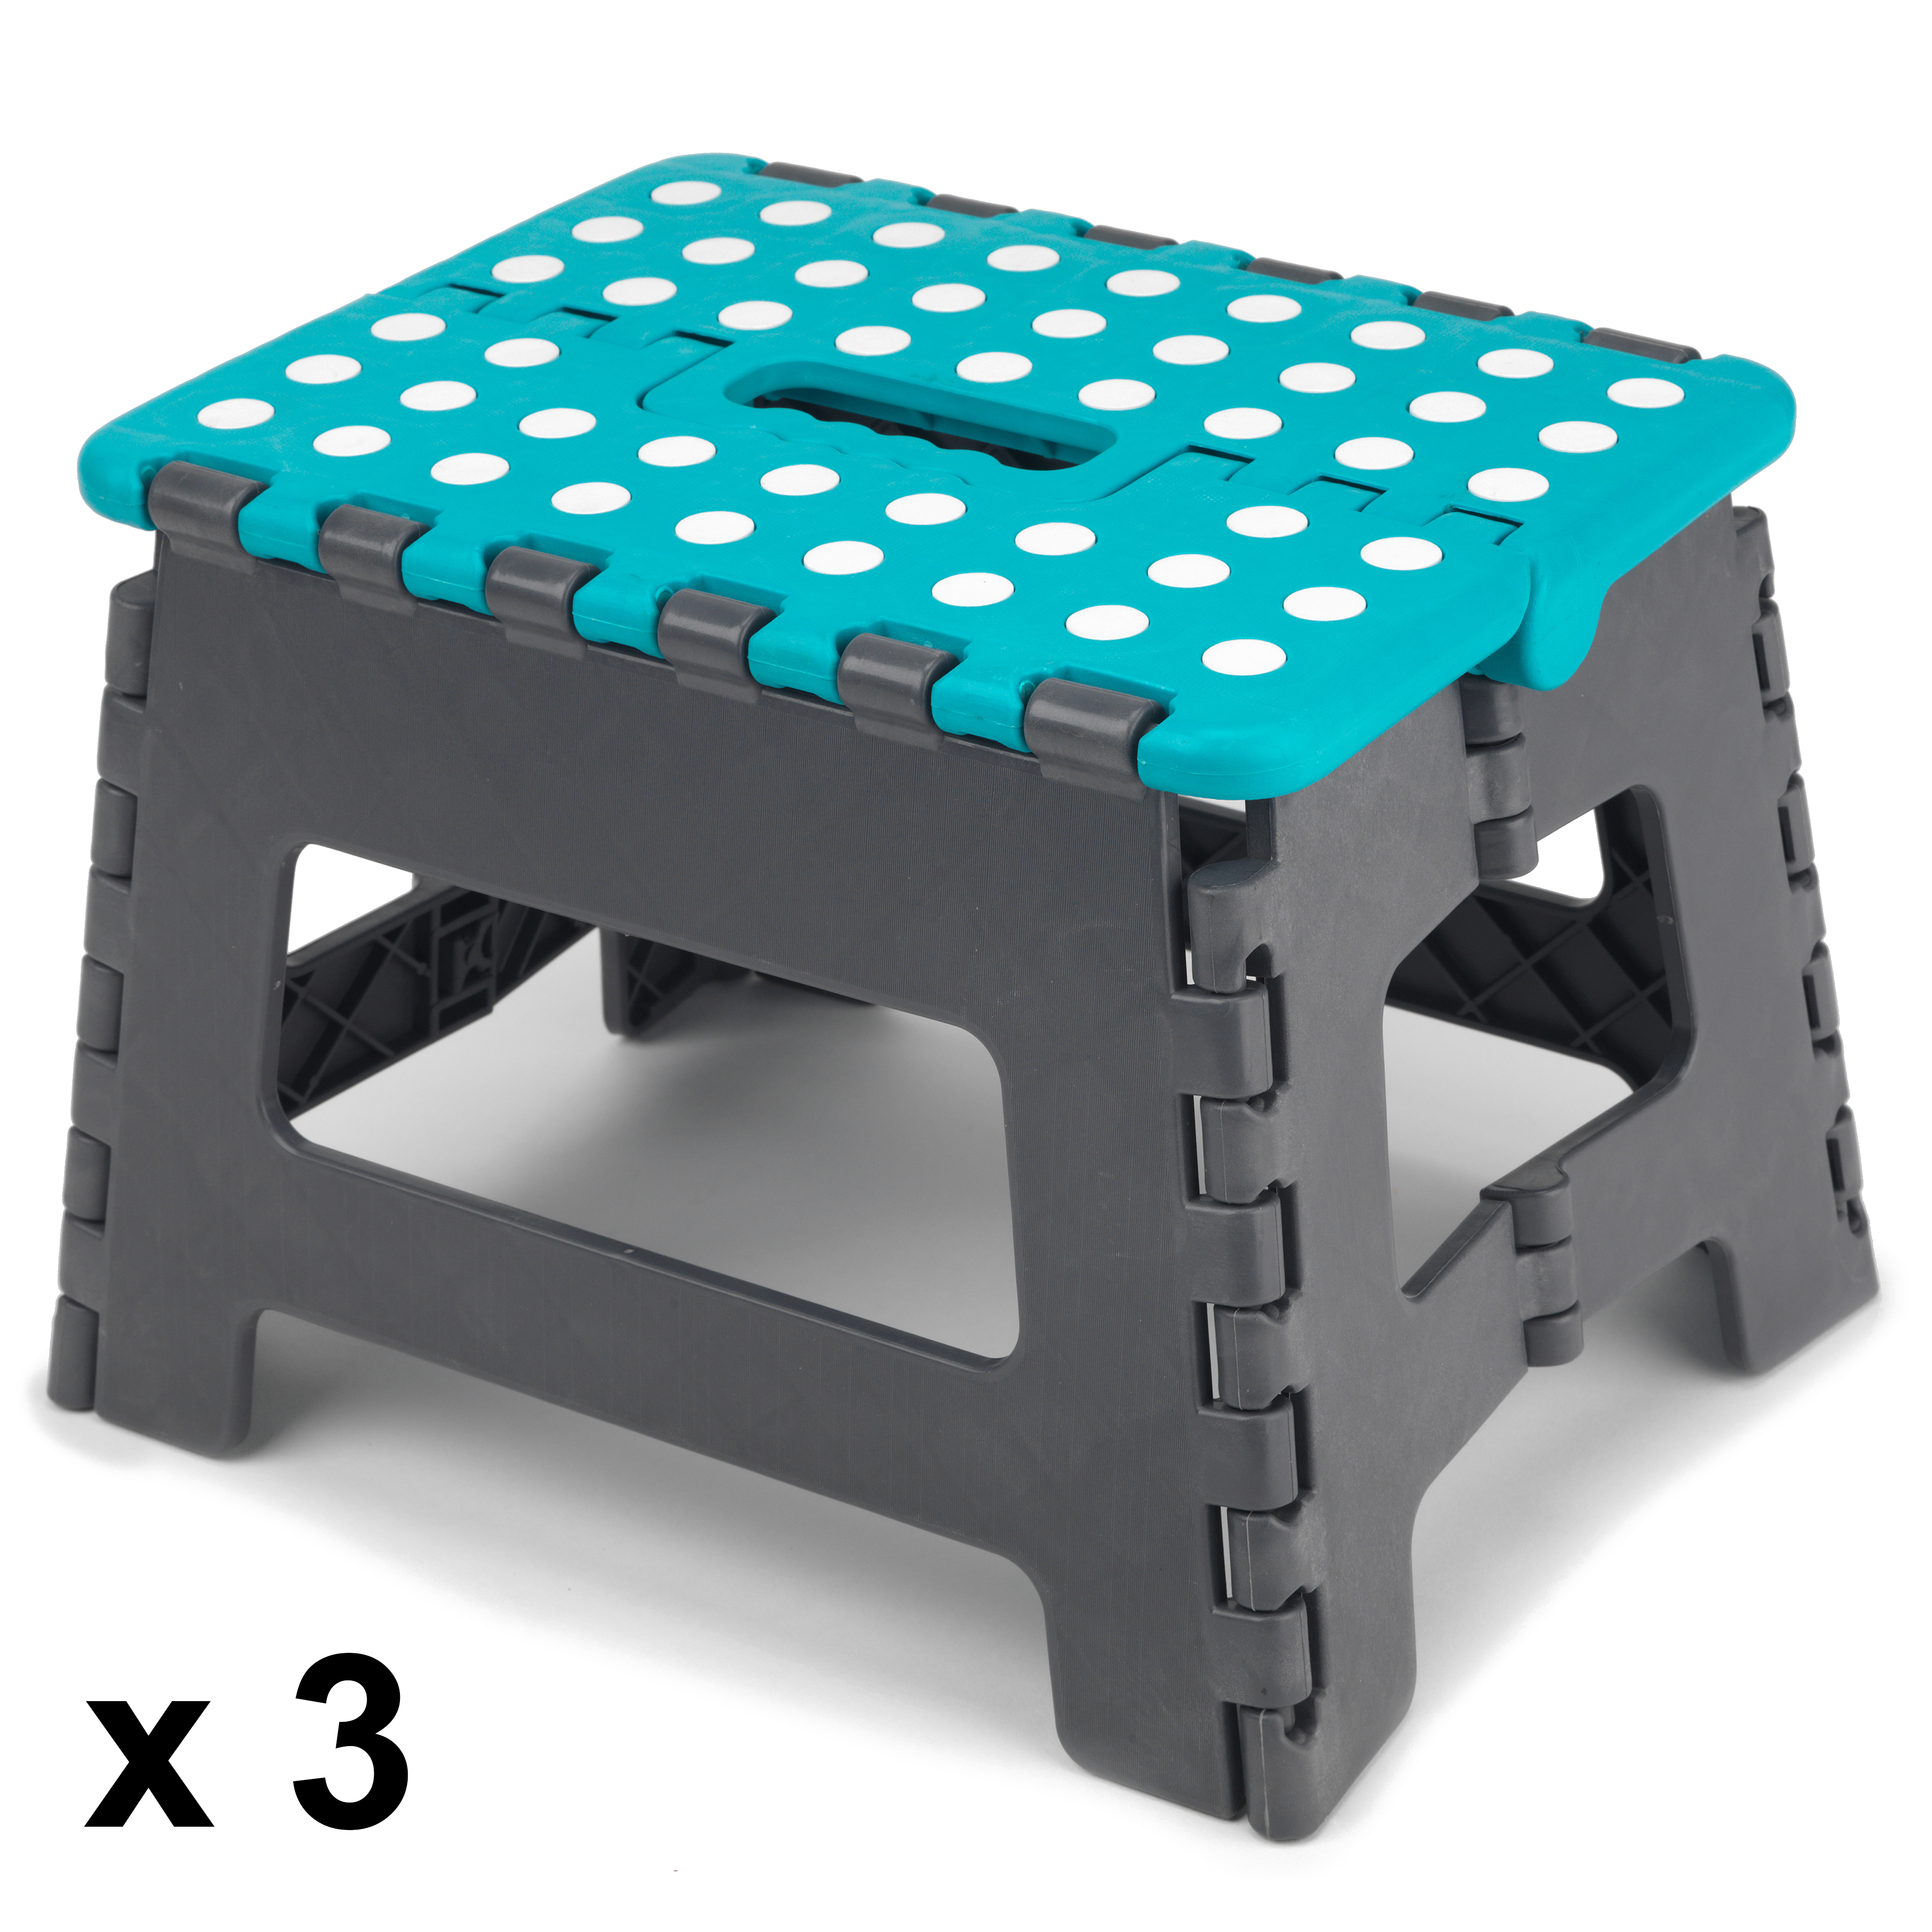 Wondrous Beldray Diy Hobby Step Stool Small Plastic Set Of 3 Theyellowbook Wood Chair Design Ideas Theyellowbookinfo